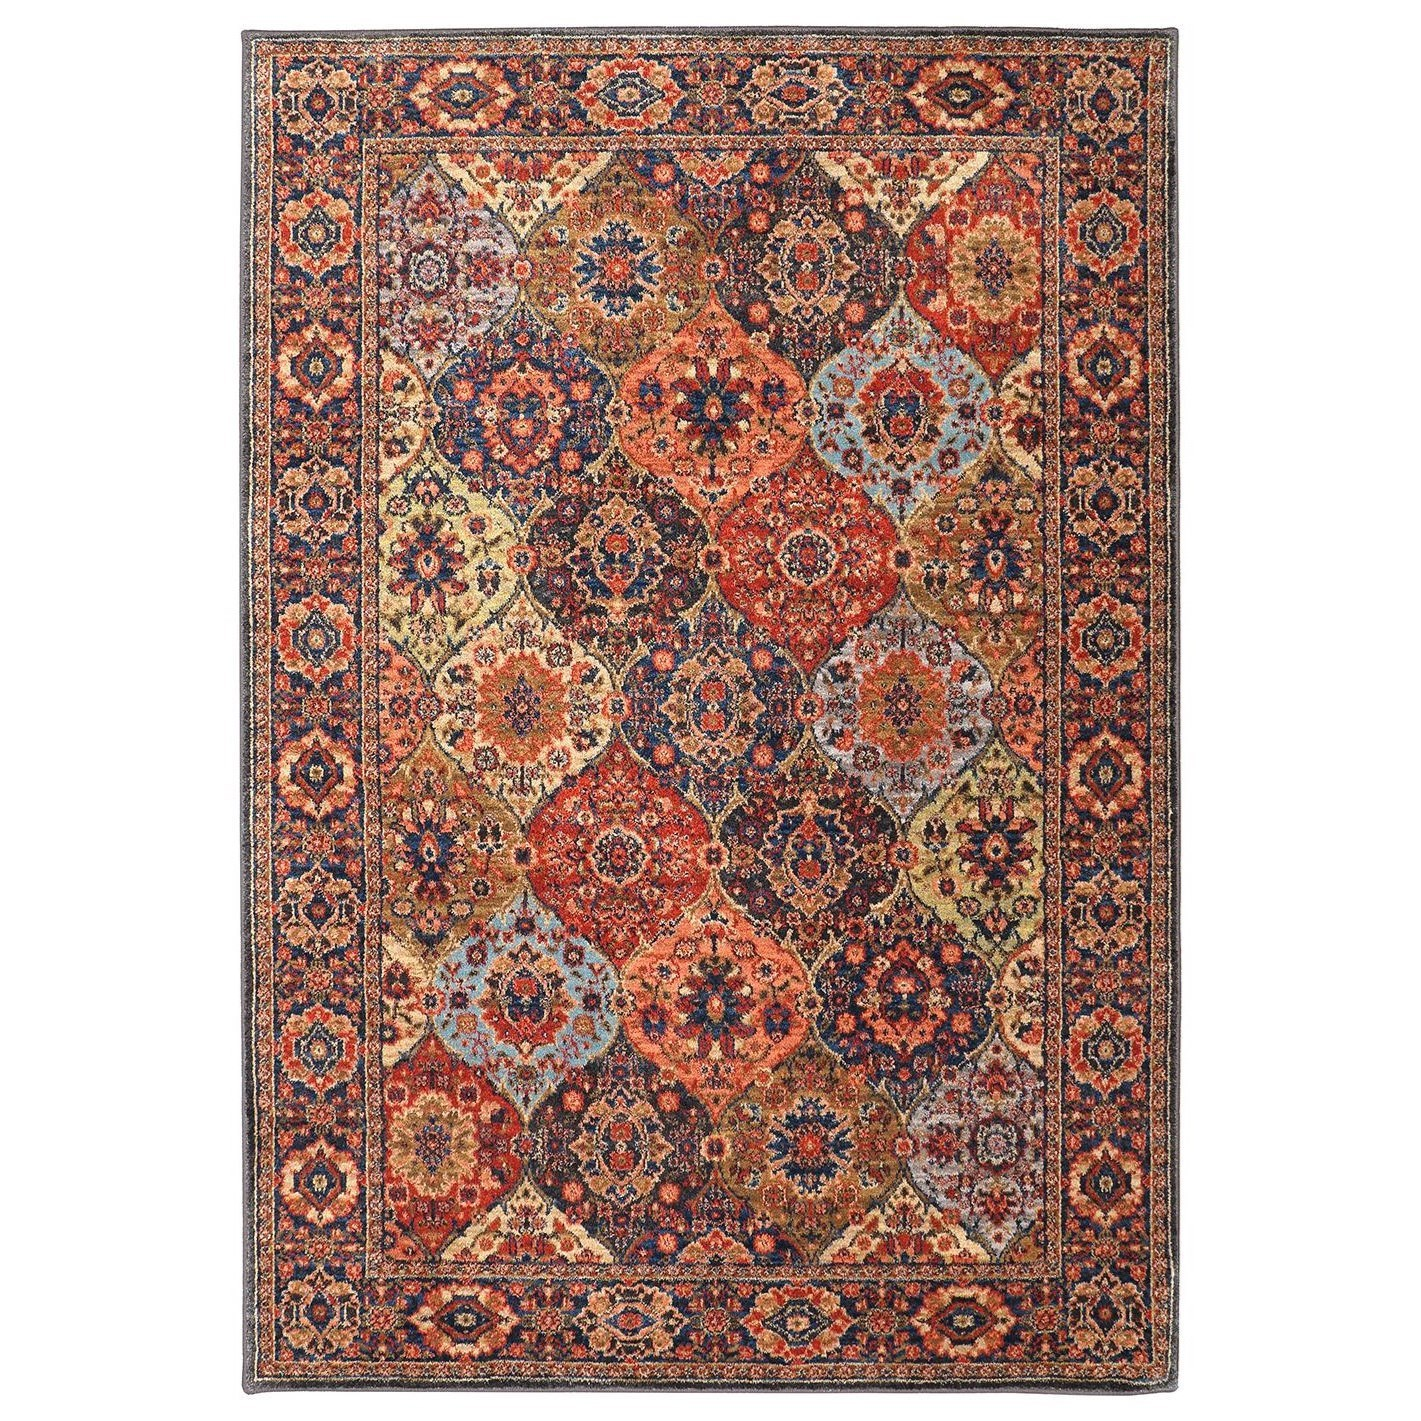 Spice Market 8'x11' Levant Multi Rug by Karastan Rugs at Darvin Furniture